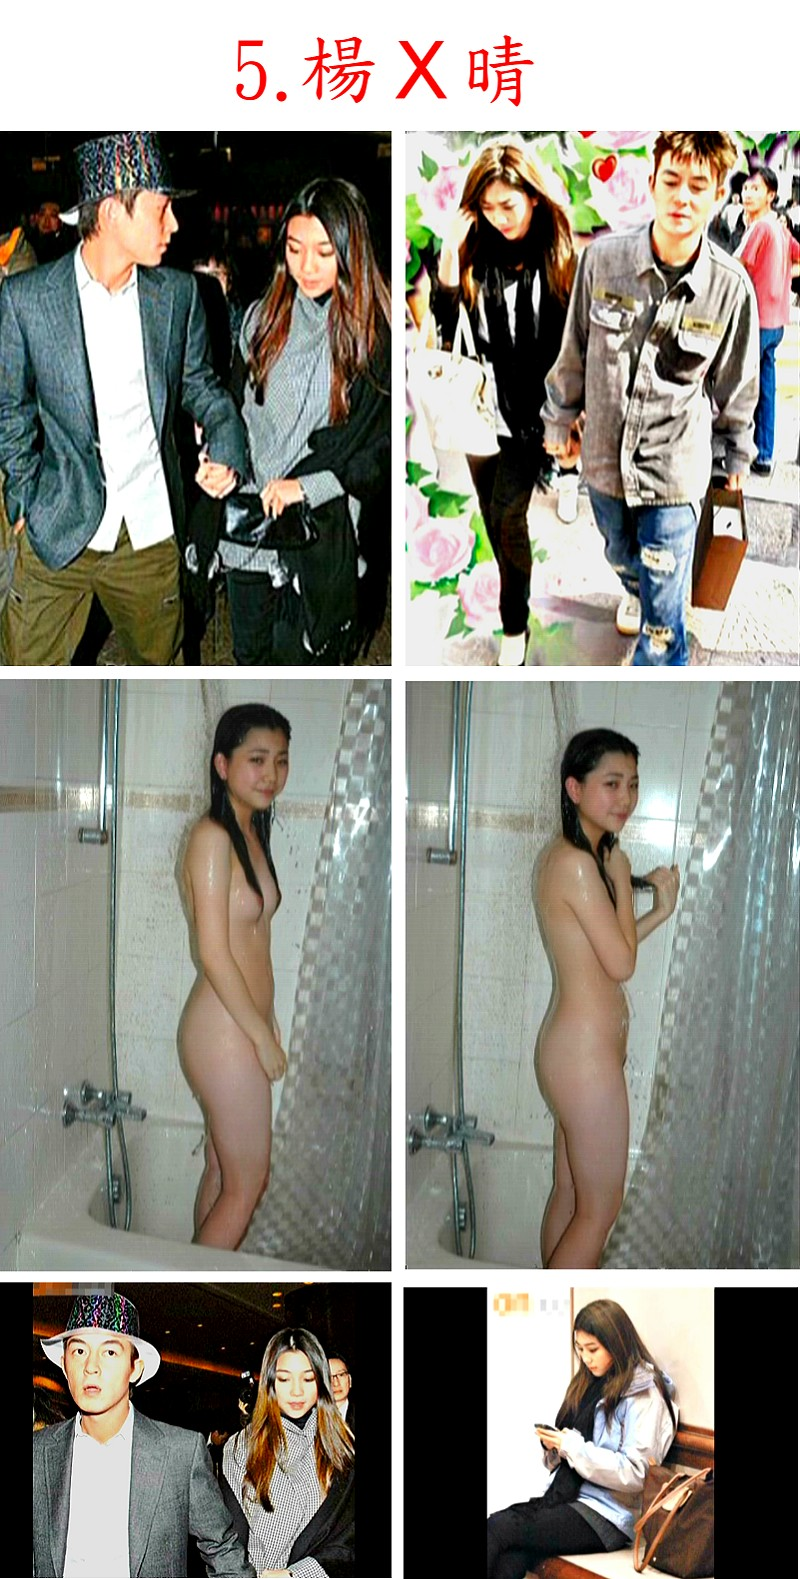 wiki edison chen photo scandal